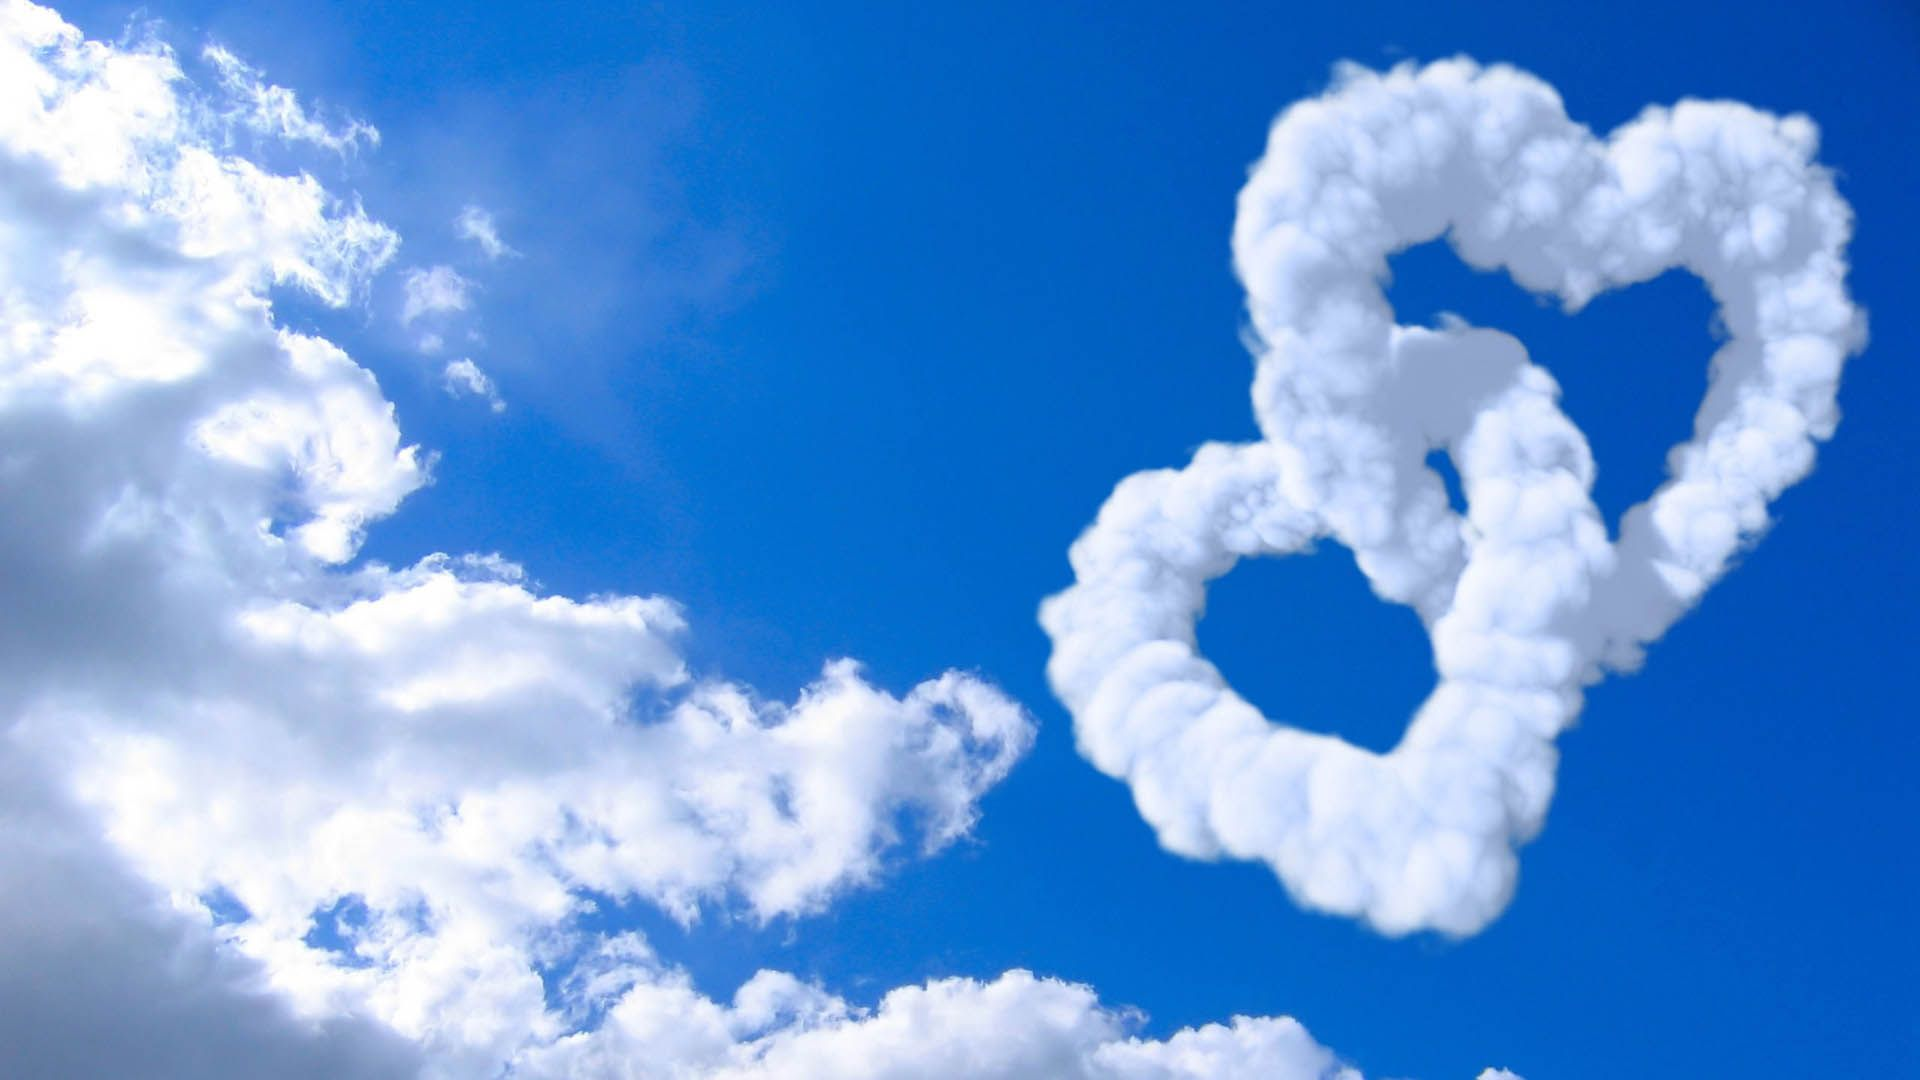 Cloud Wallpaper Love Heart Hd Desktop Wallpapers 4k Hd